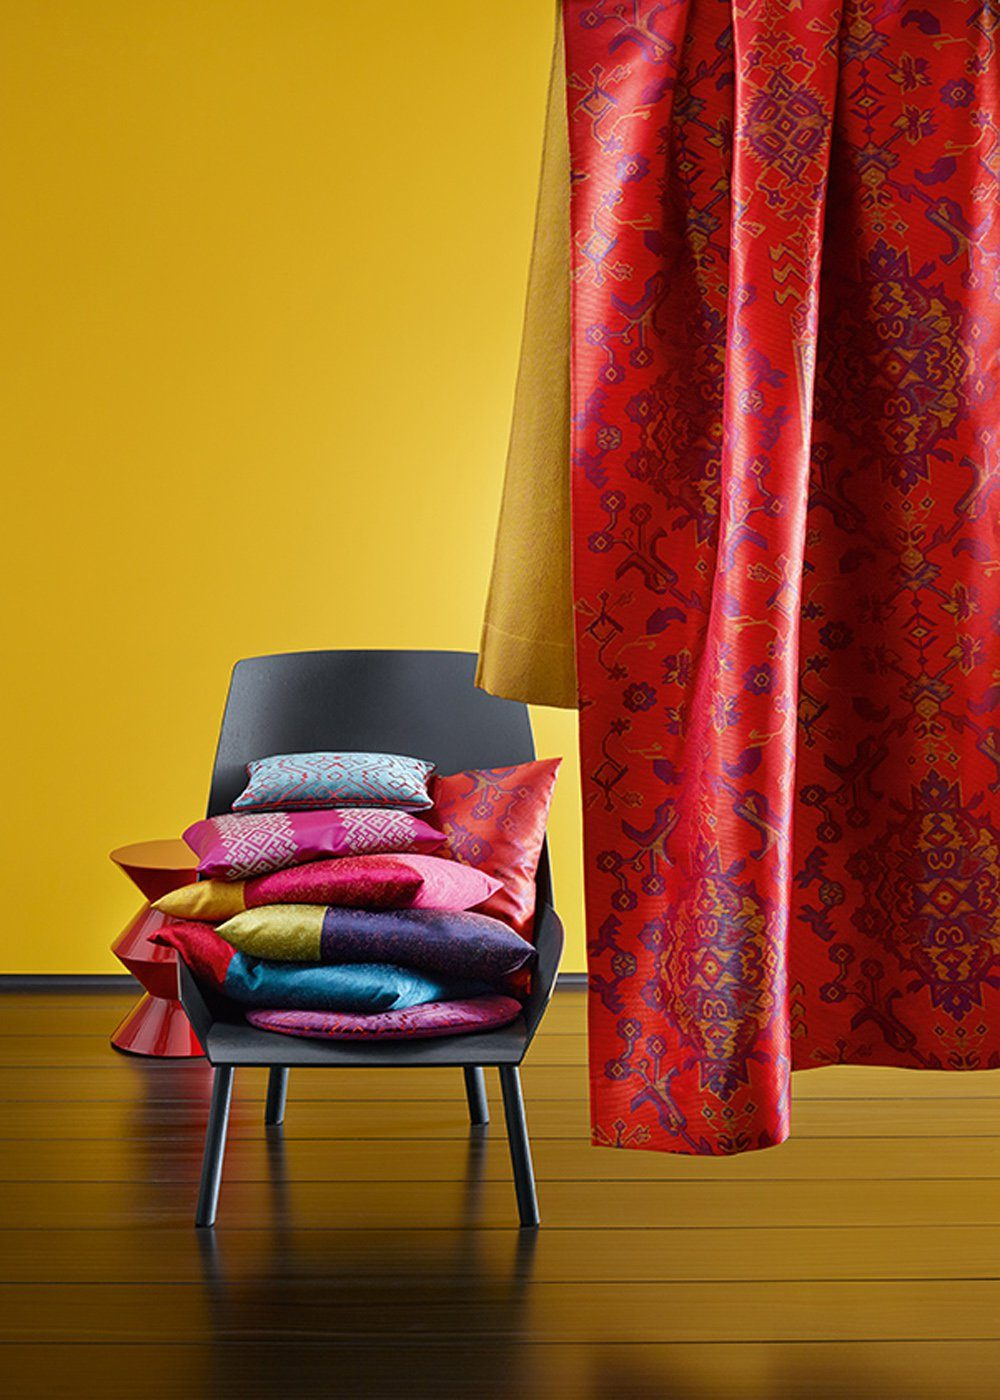 Yellow walls and red curtains